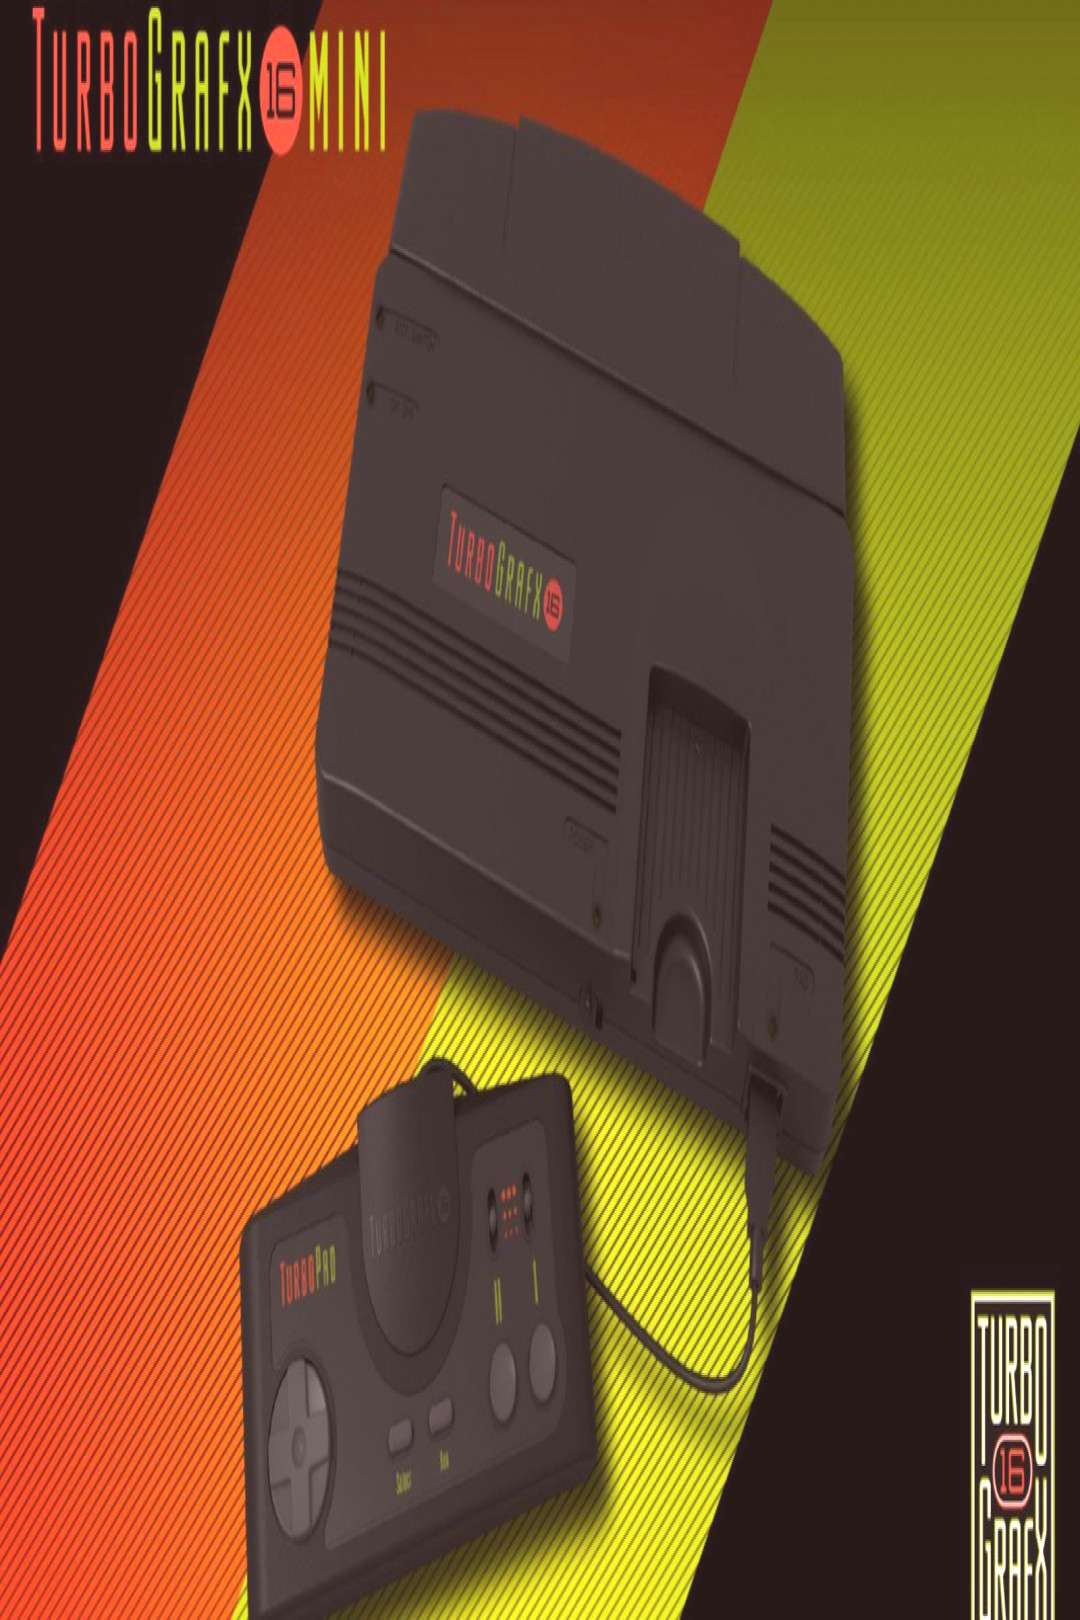 A Short Review On The TurboGrafx-16 Mini Console - The Video Game For Retro Gaming